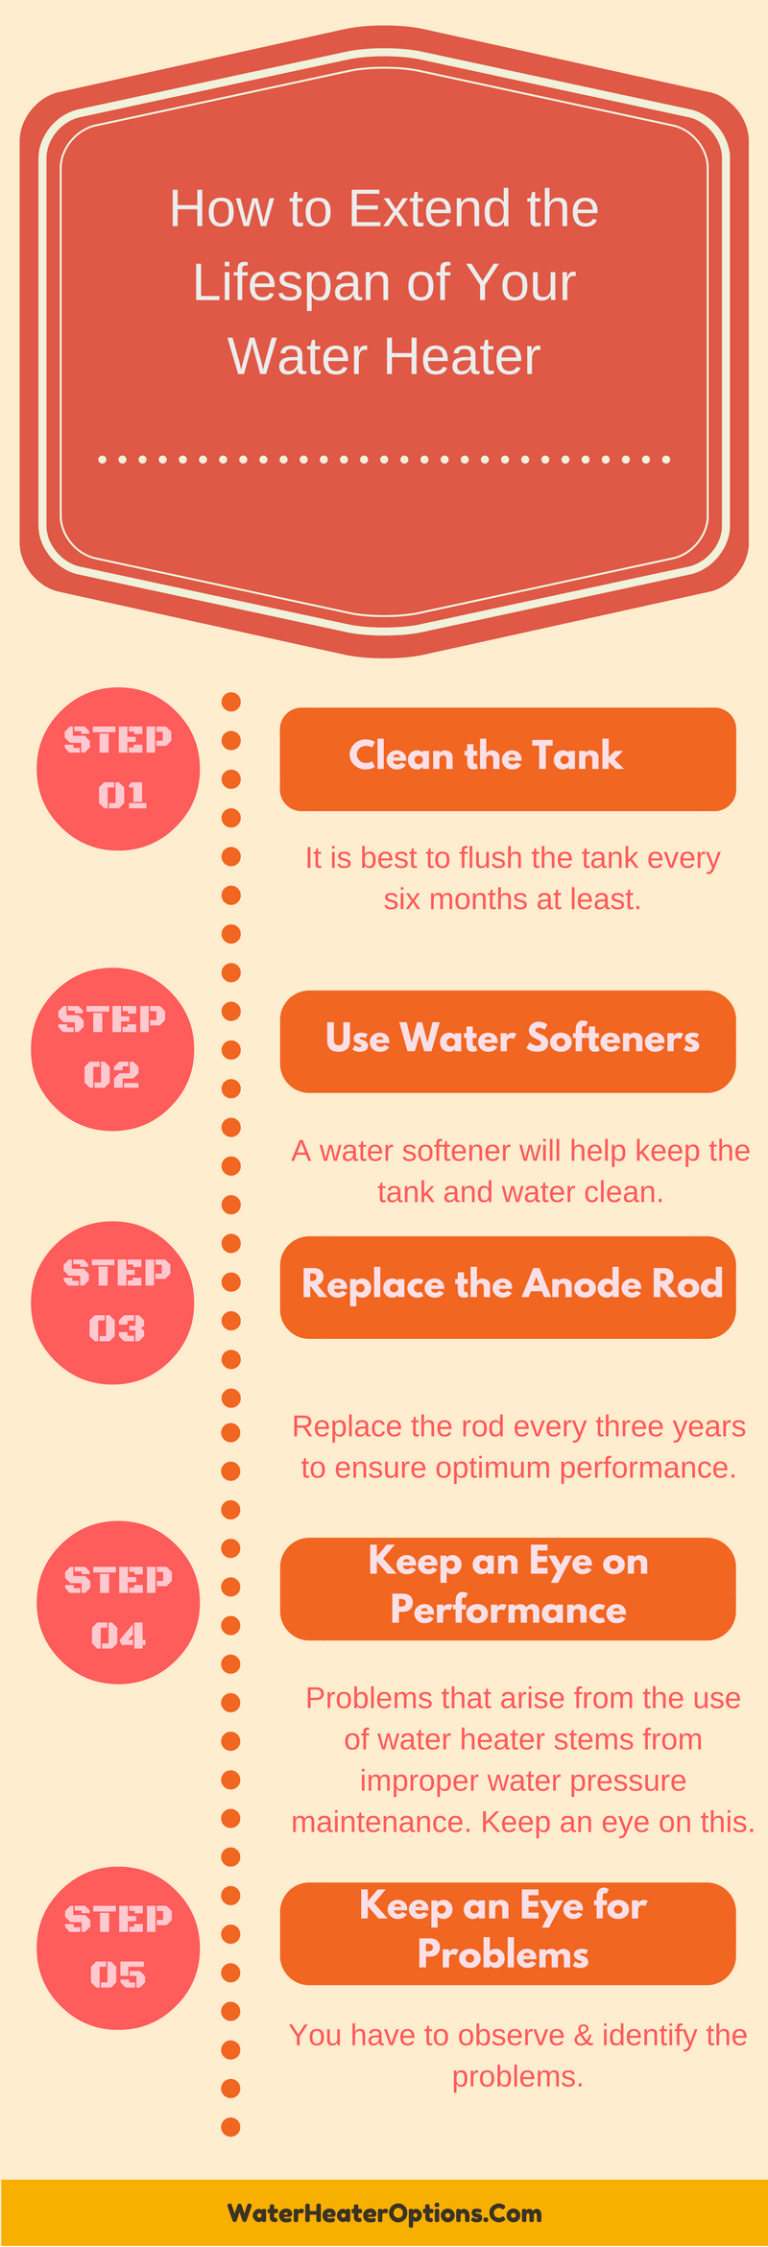 Extend the Lifespan of Your Water Heater